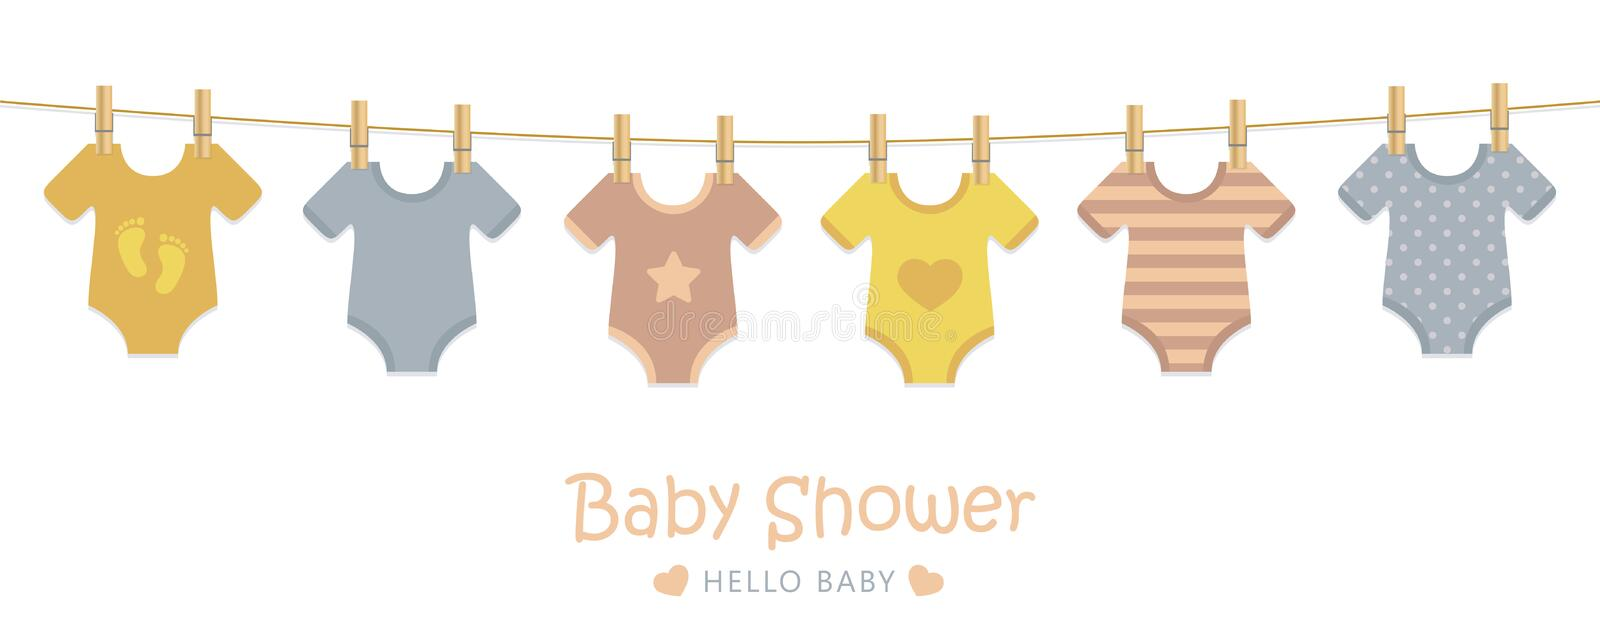 Baby shower welcome greeting card for childbirth with hanging bodysuits. Vector illustration EPS10 royalty free illustration